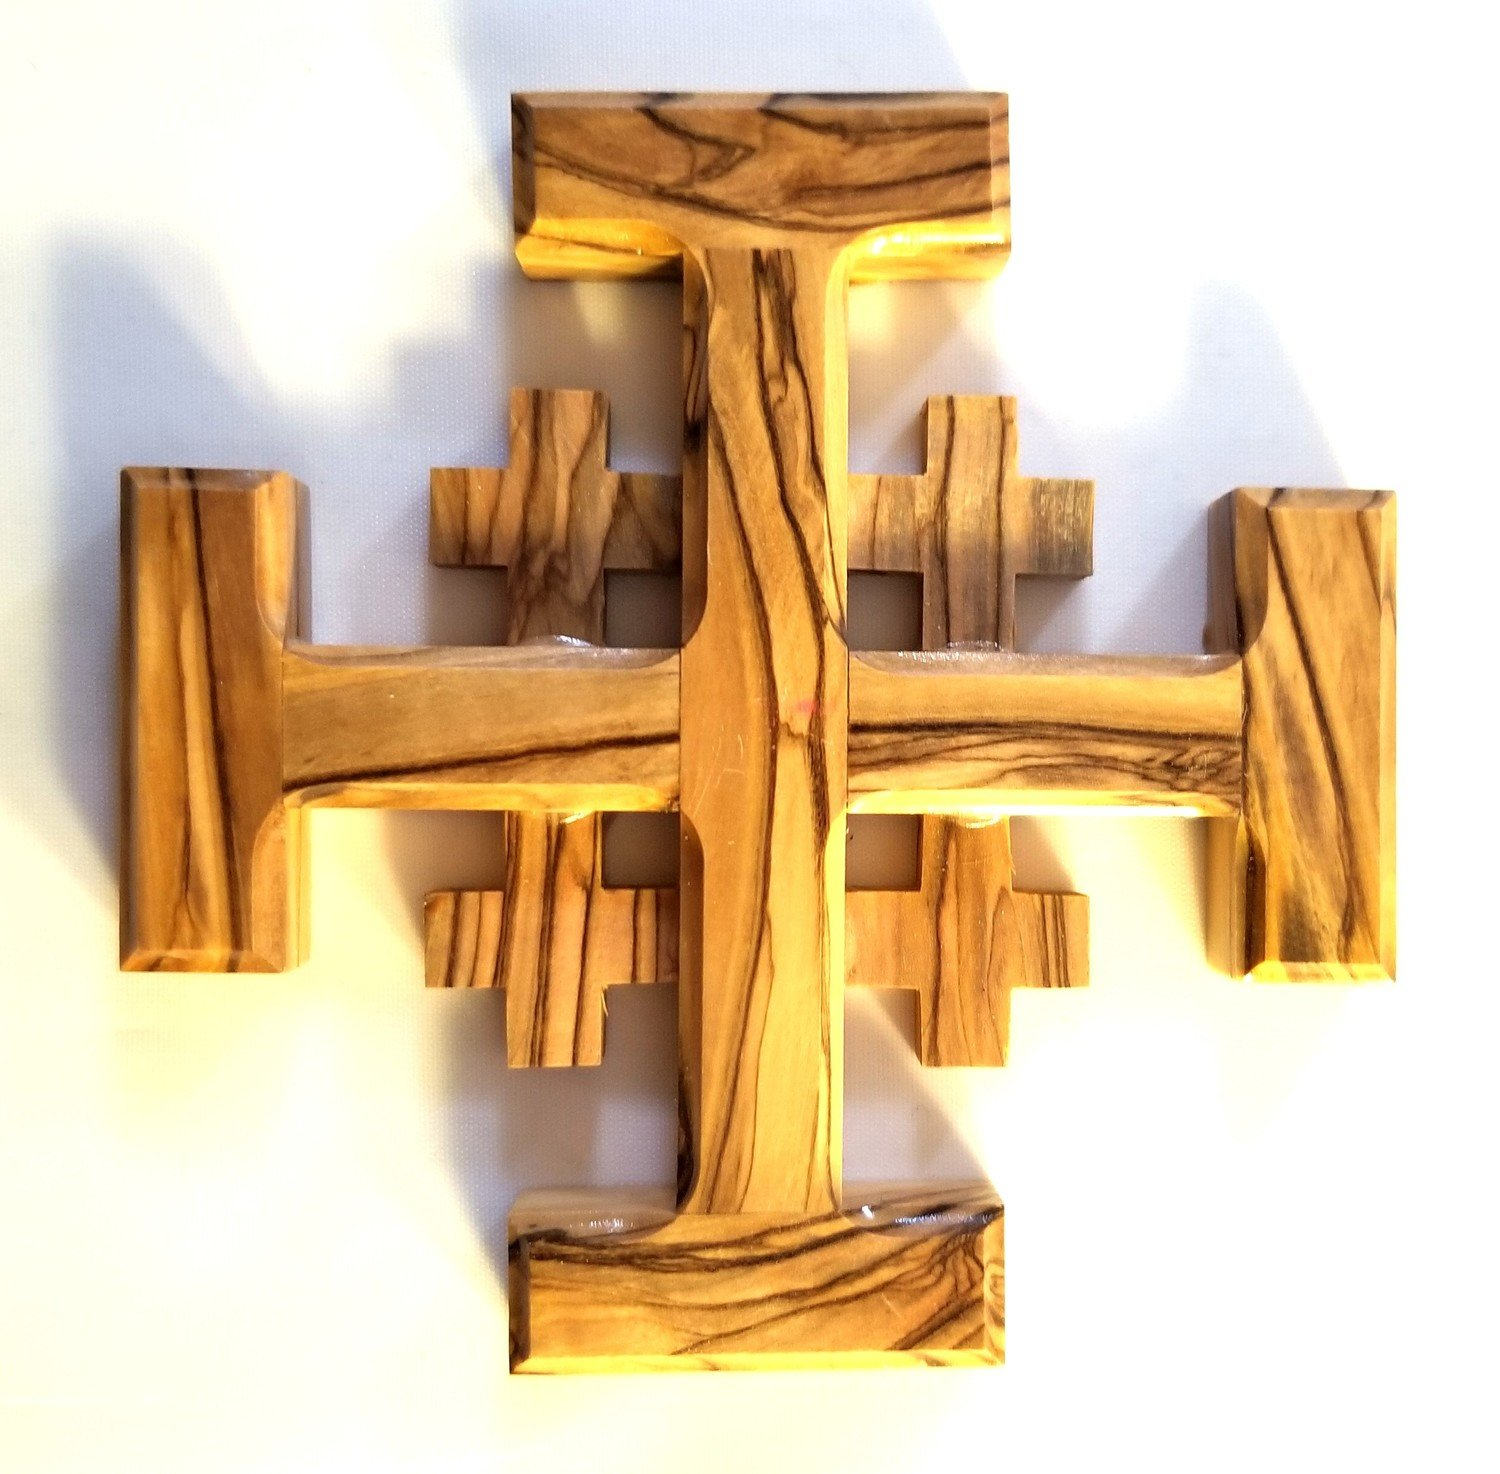 Handcrafted Olive Wood Jerusalem Cross from Bethlehem - Small